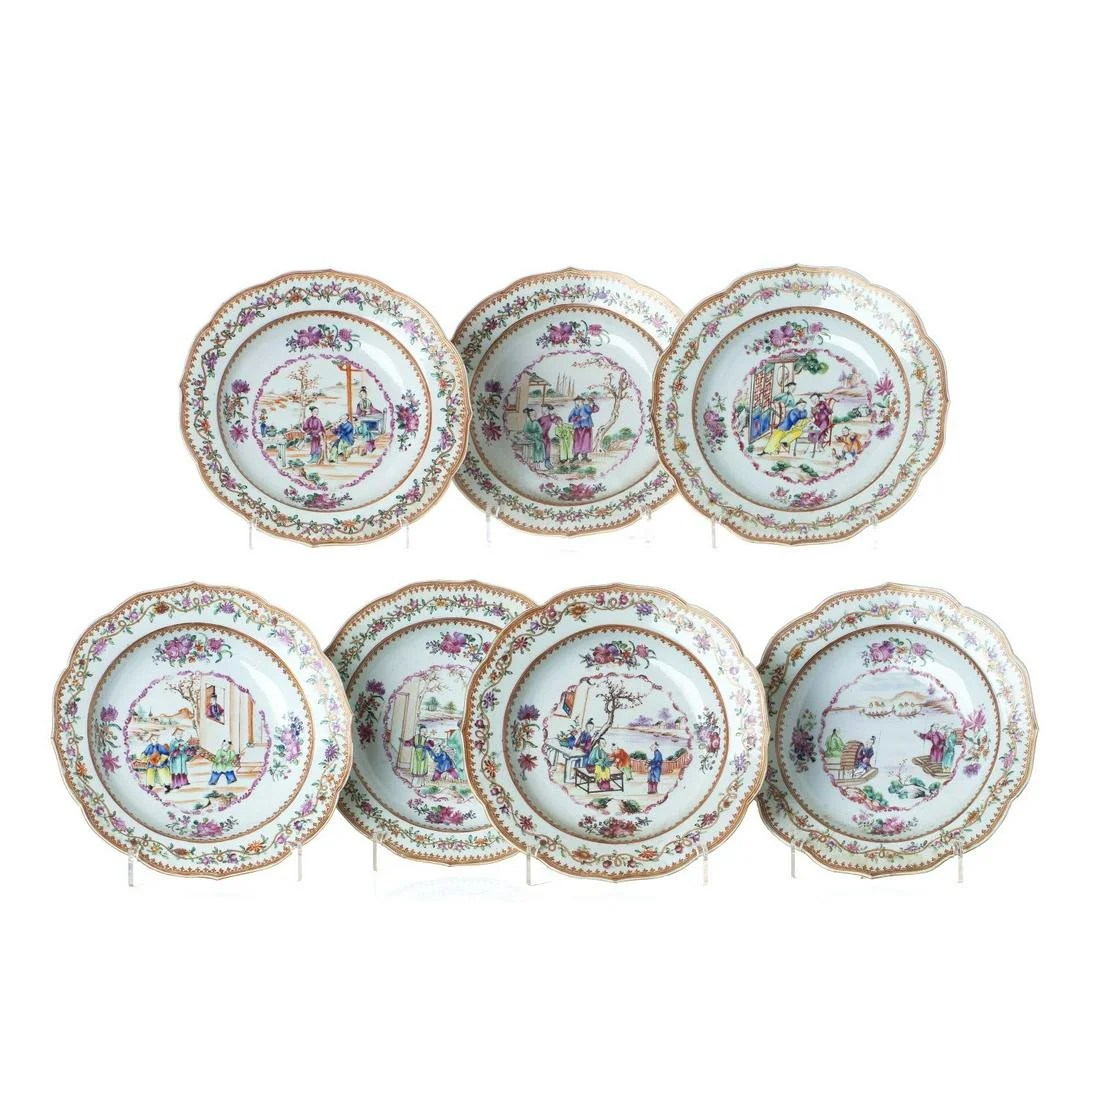 Seven soap 'Mandarin' plates in Chinese porcelain,